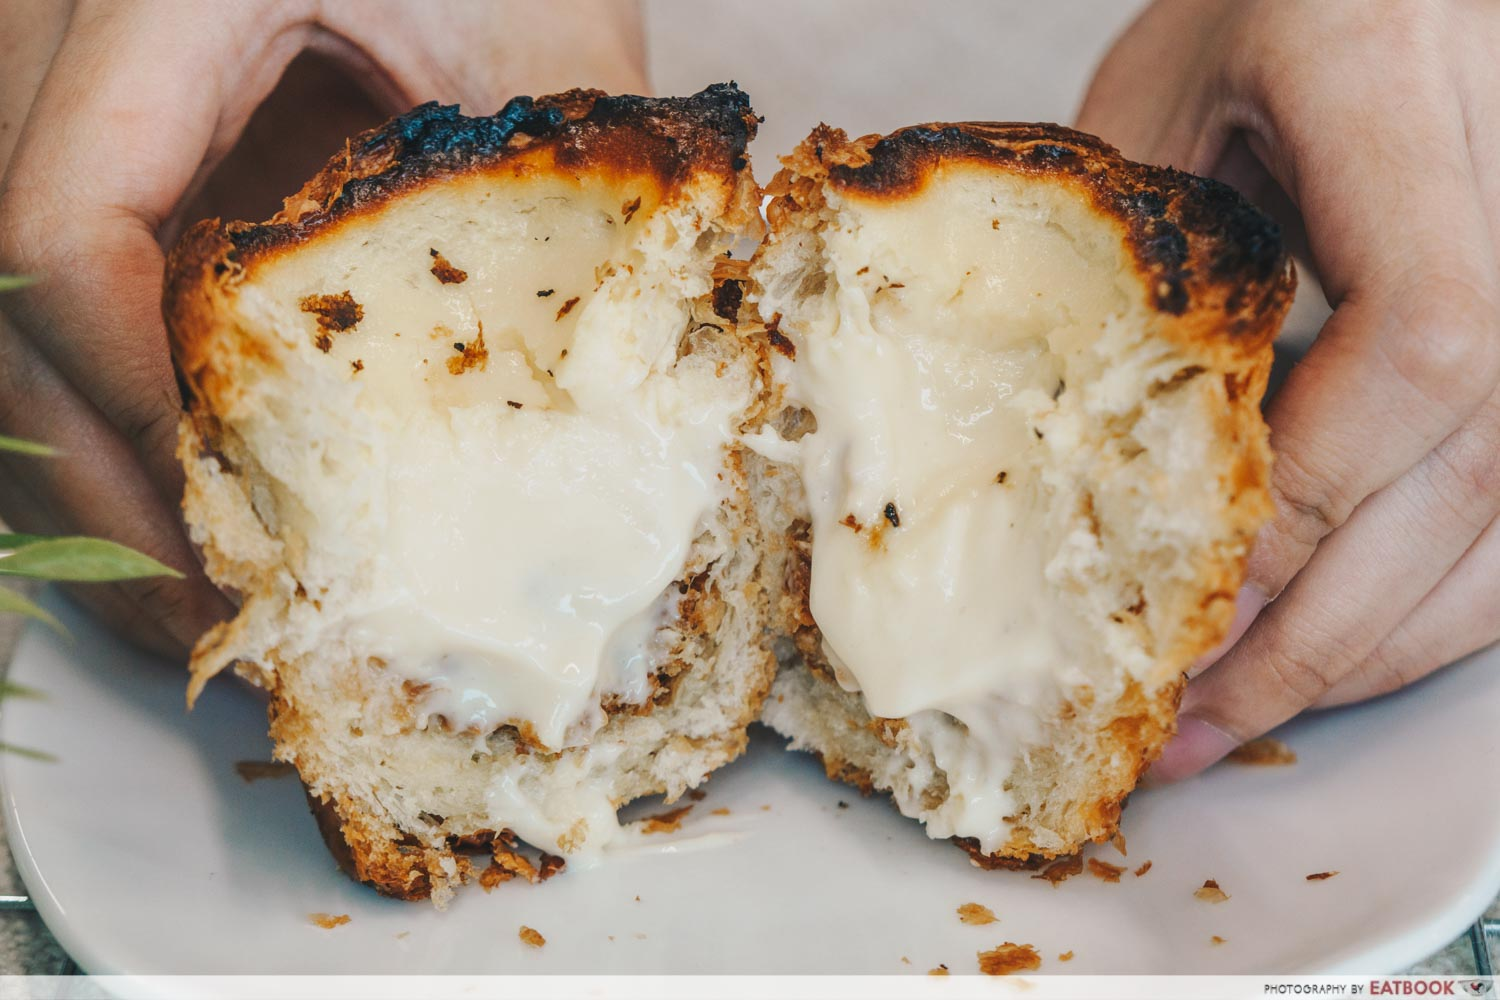 Keong Saik Bakery - burnt cheese cruffin cross section